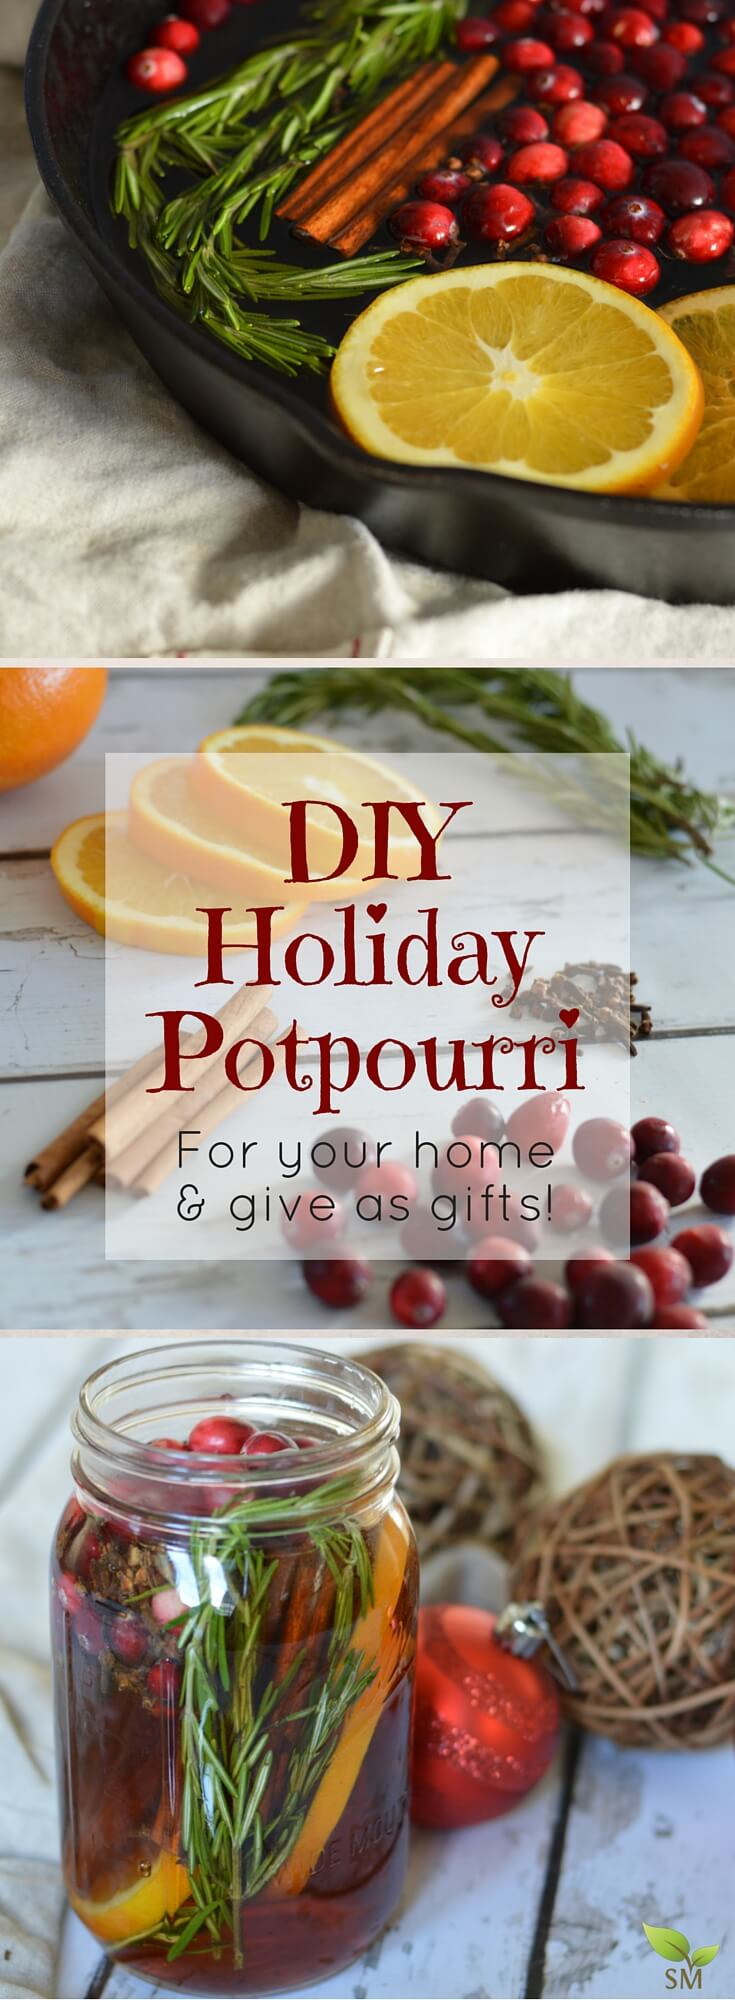 Diy Holiday Potpourri For Your Home And Give As Gifts Scratch Mommy